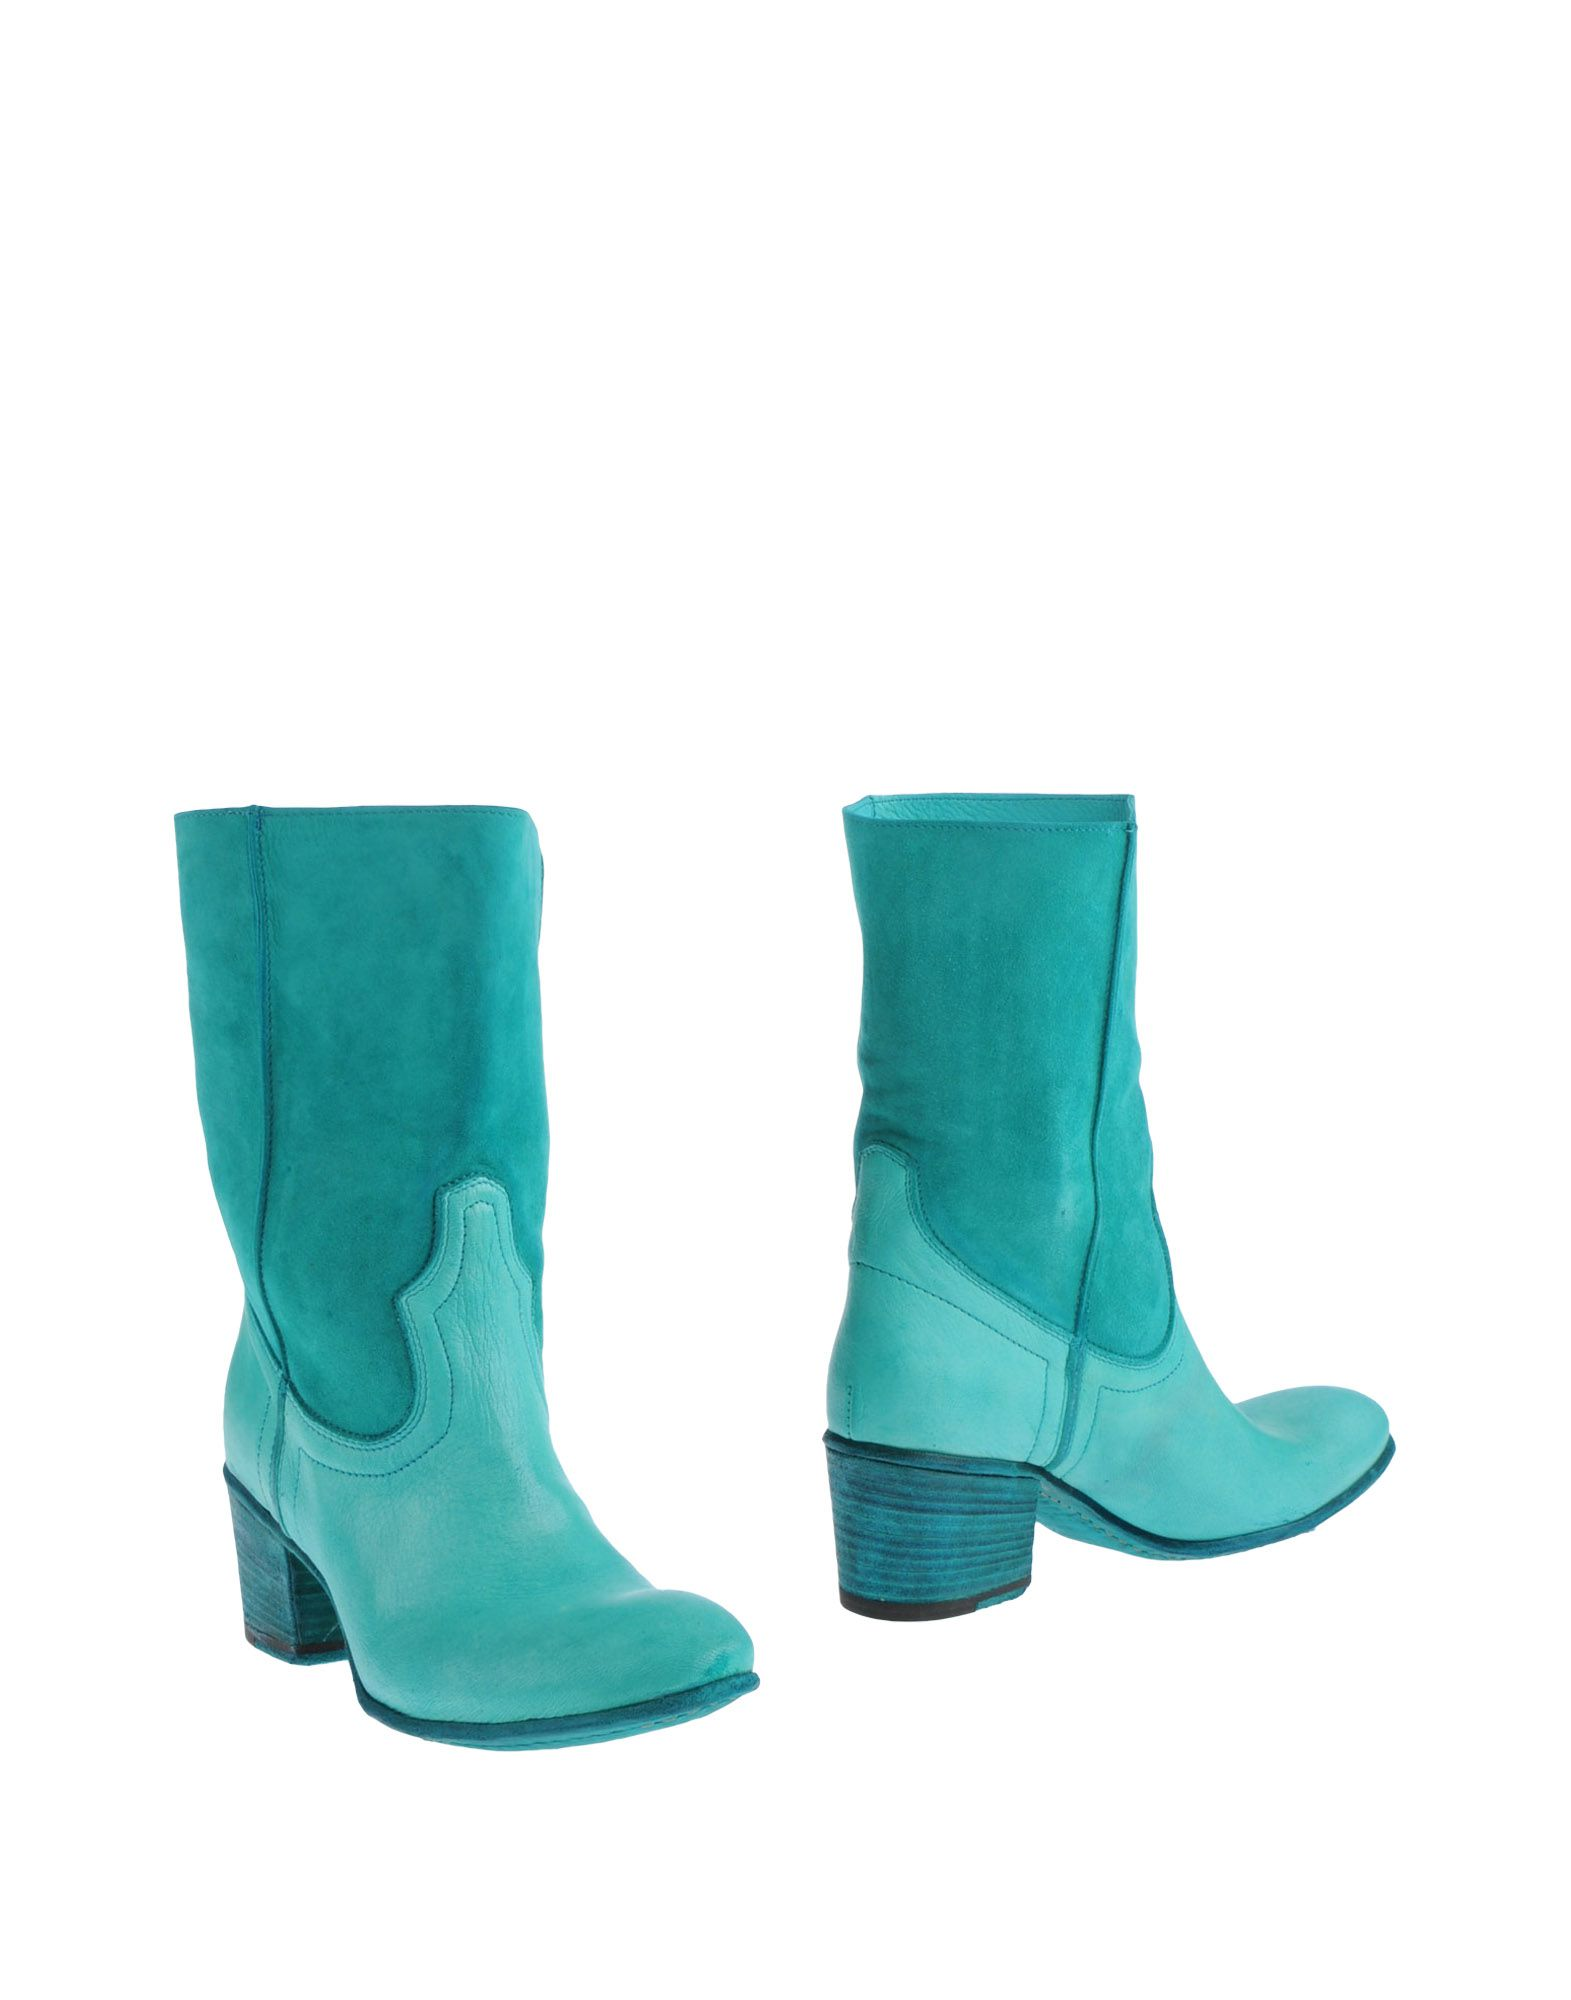 fauzian jeunesse ankle boots in teal turquoise lyst